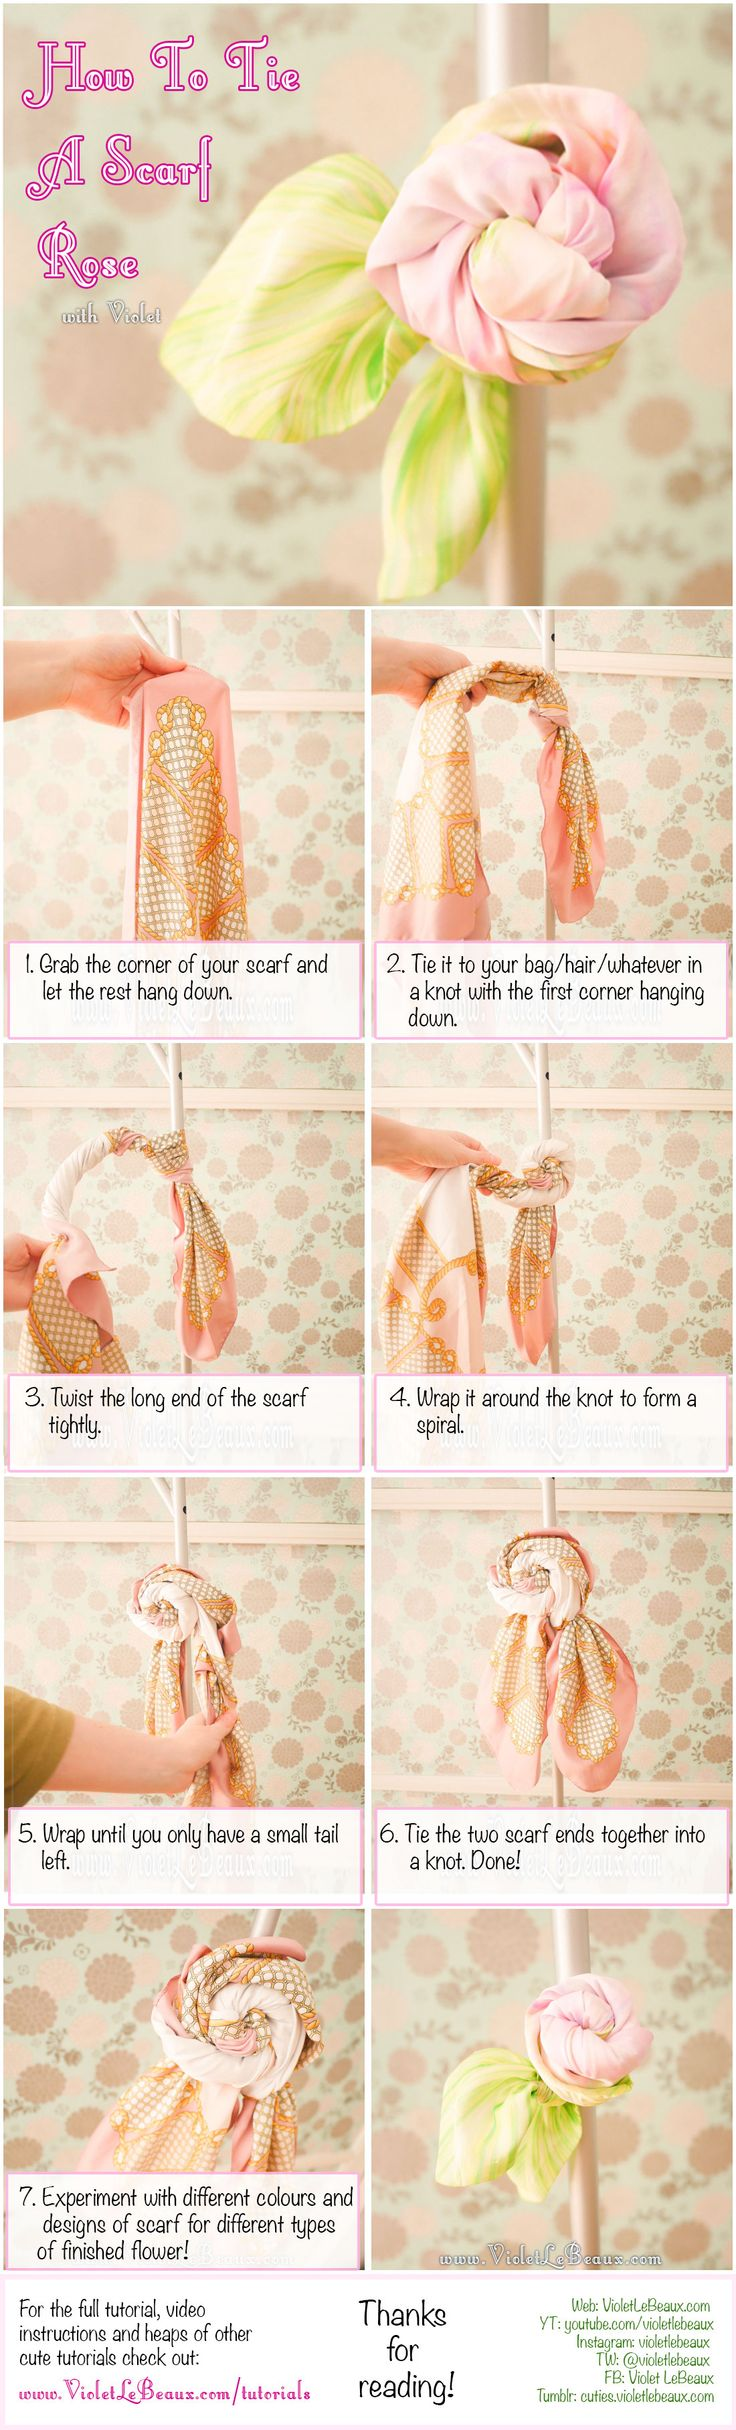 How To Tie A Scarf Into A Rose | Violet LeBeaux- Cute Free Craft Tutorials